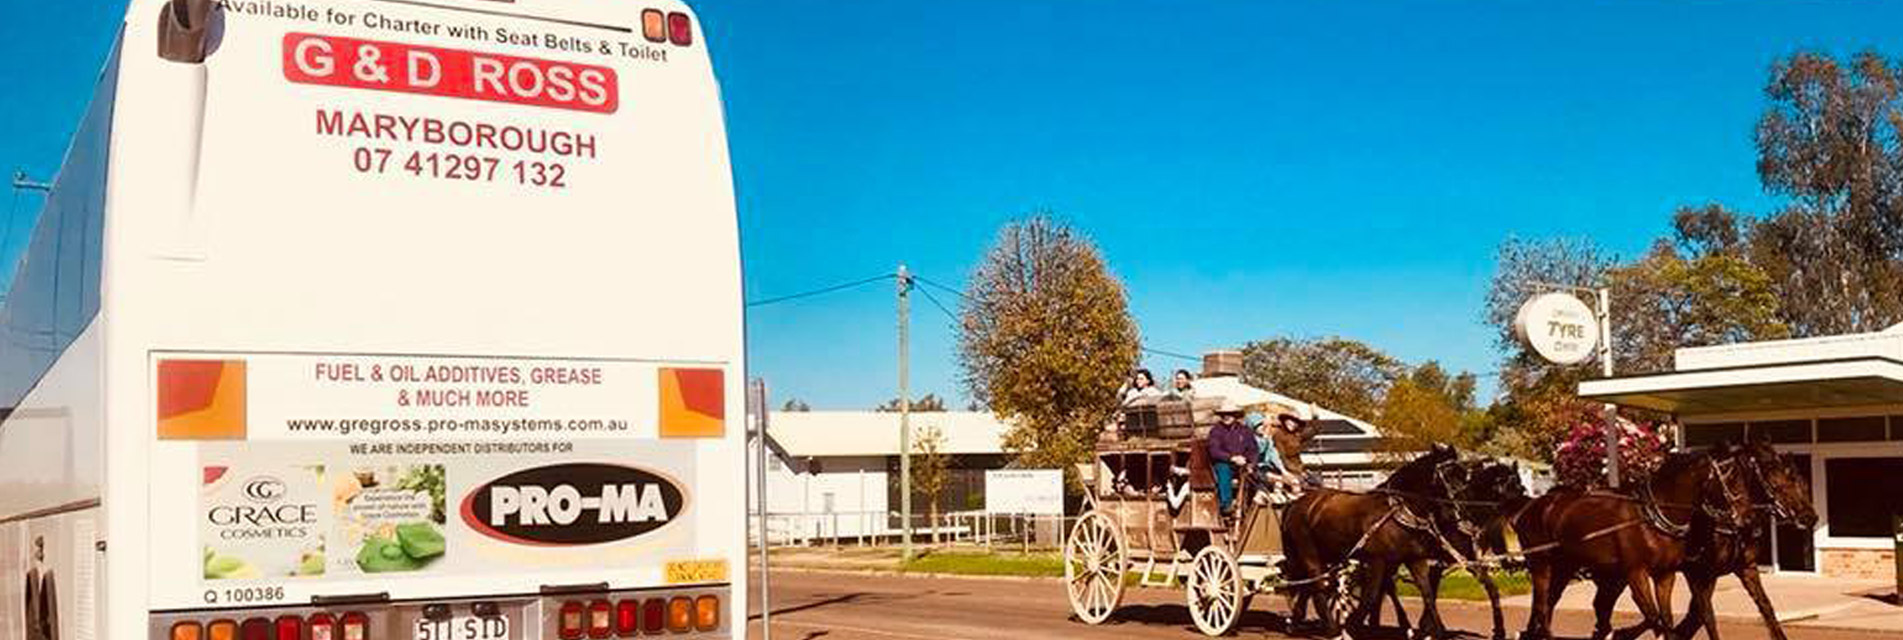 G&D Bus Tour — Tours in Maryborough QLD